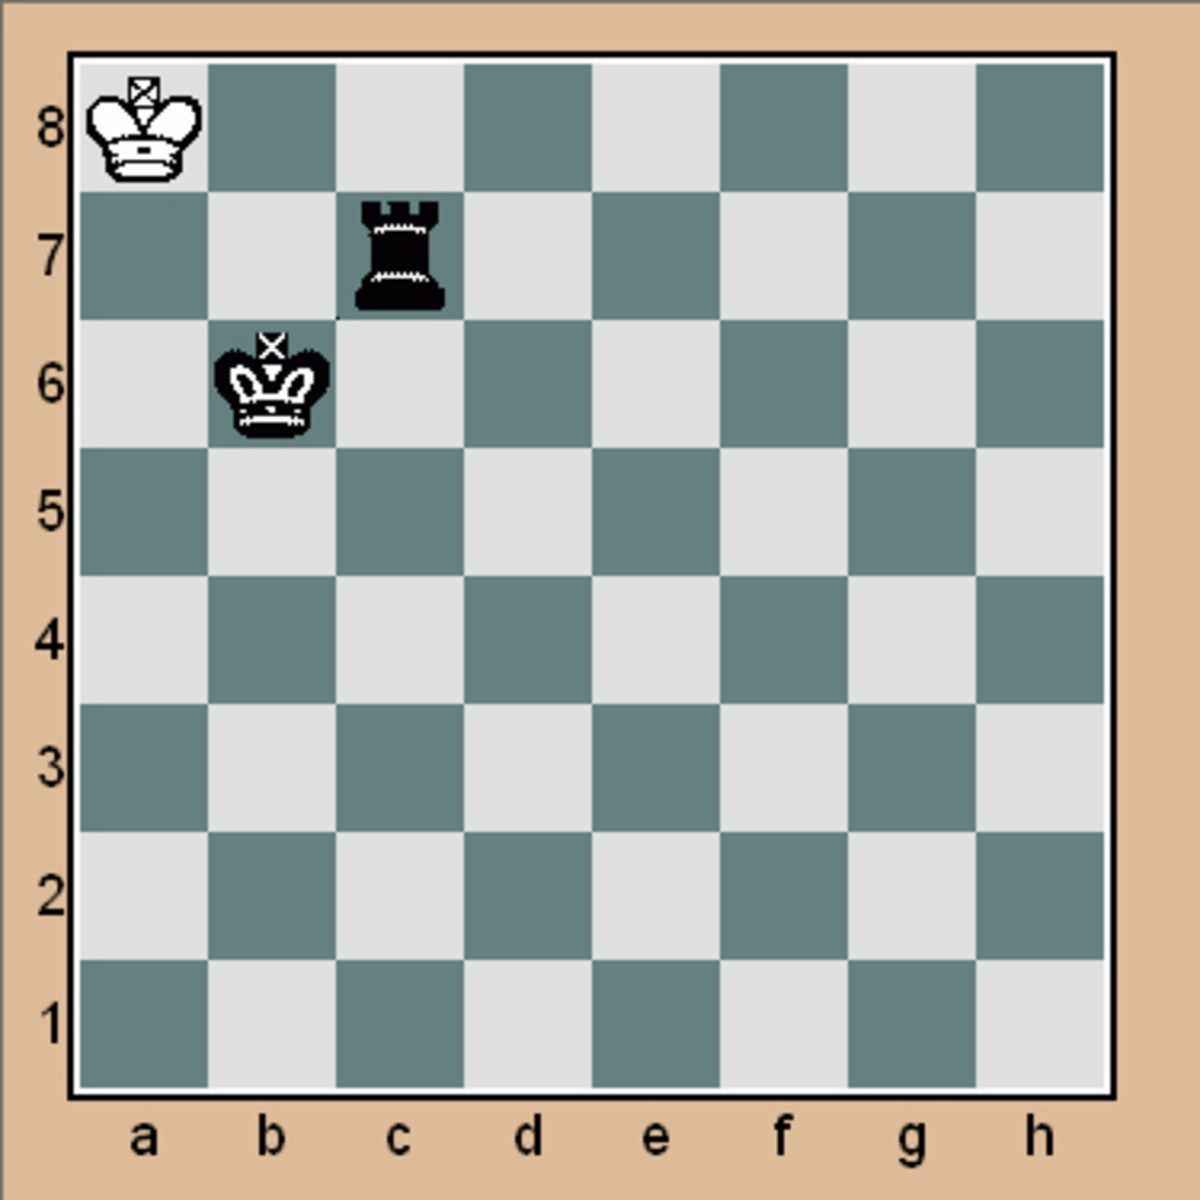 Mate in 1 chess puzzle (Click to enlarge)